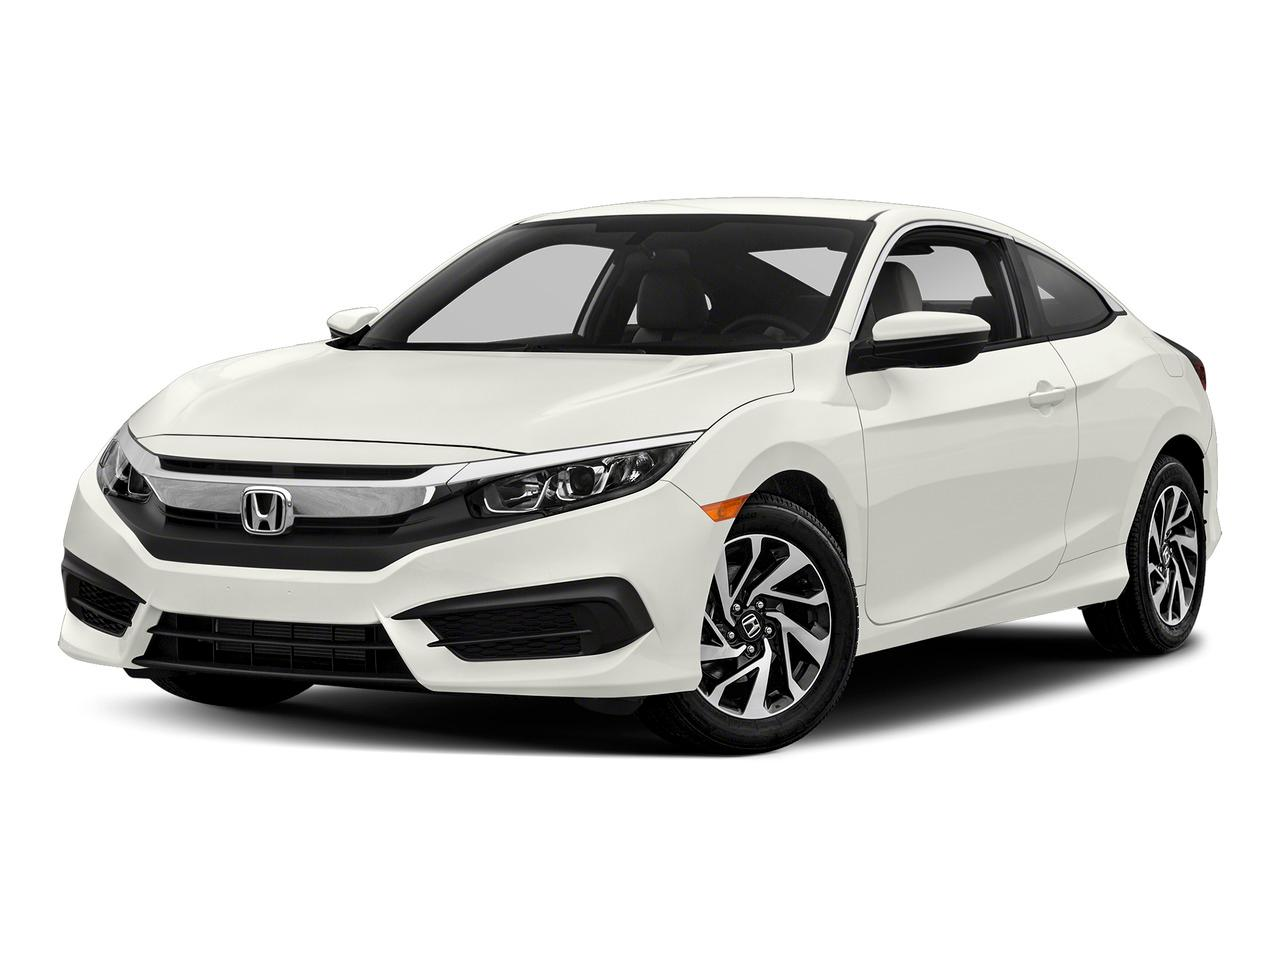 2018 Honda Civic Coupe Vehicle Photo in Richmond, TX 77469